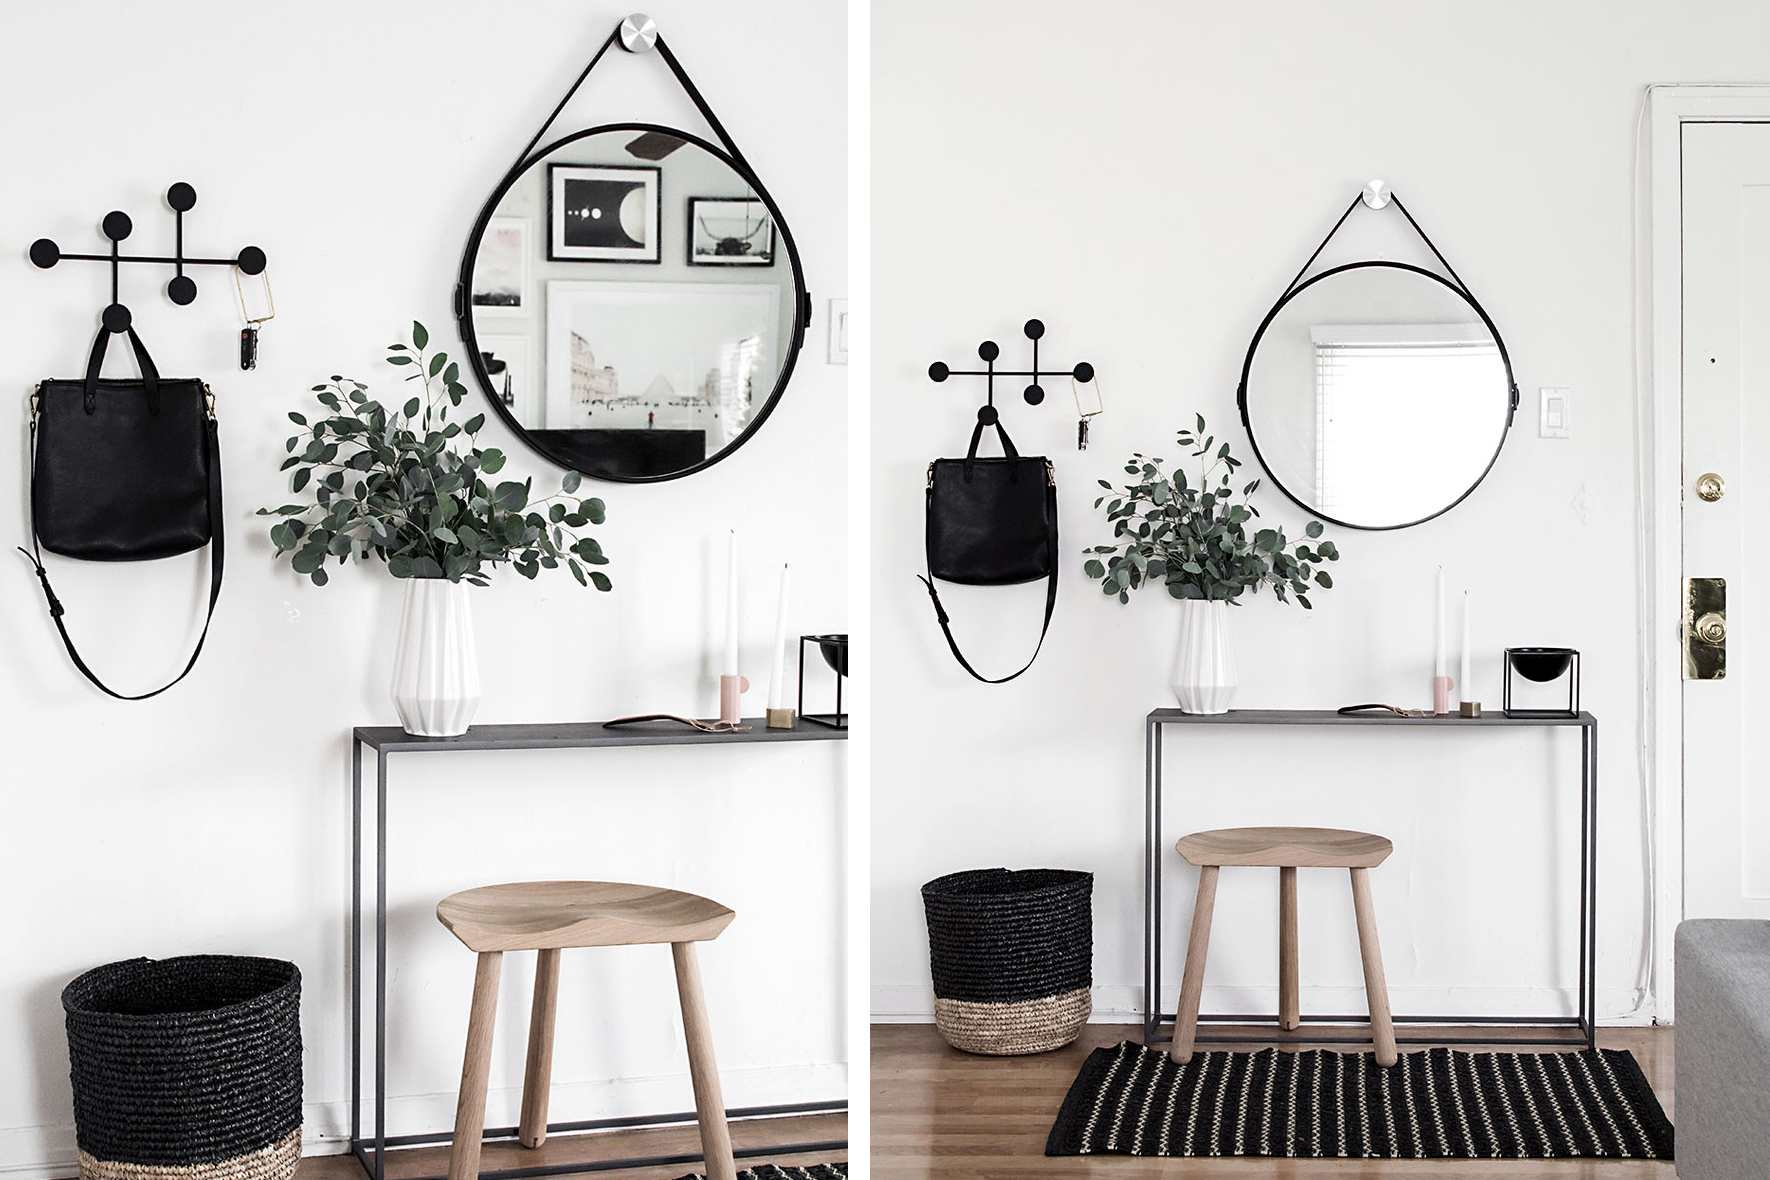 20 Looks To Make Your Small Entryway More Stylish